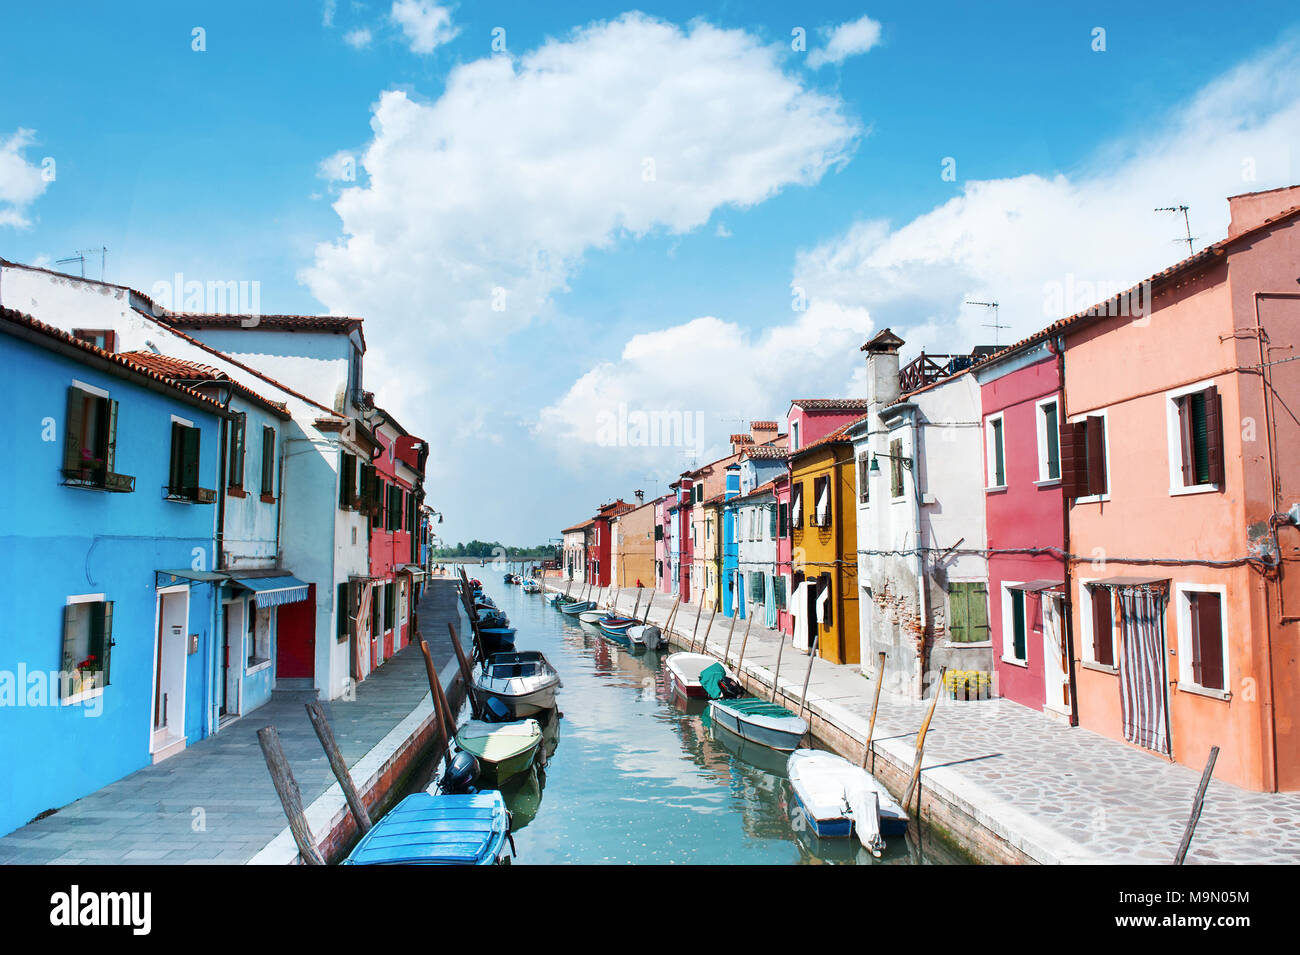 Burano island, Italy - beautiful view of a street with colorful houses and canal in a summer day. Venice postcard - Stock Image